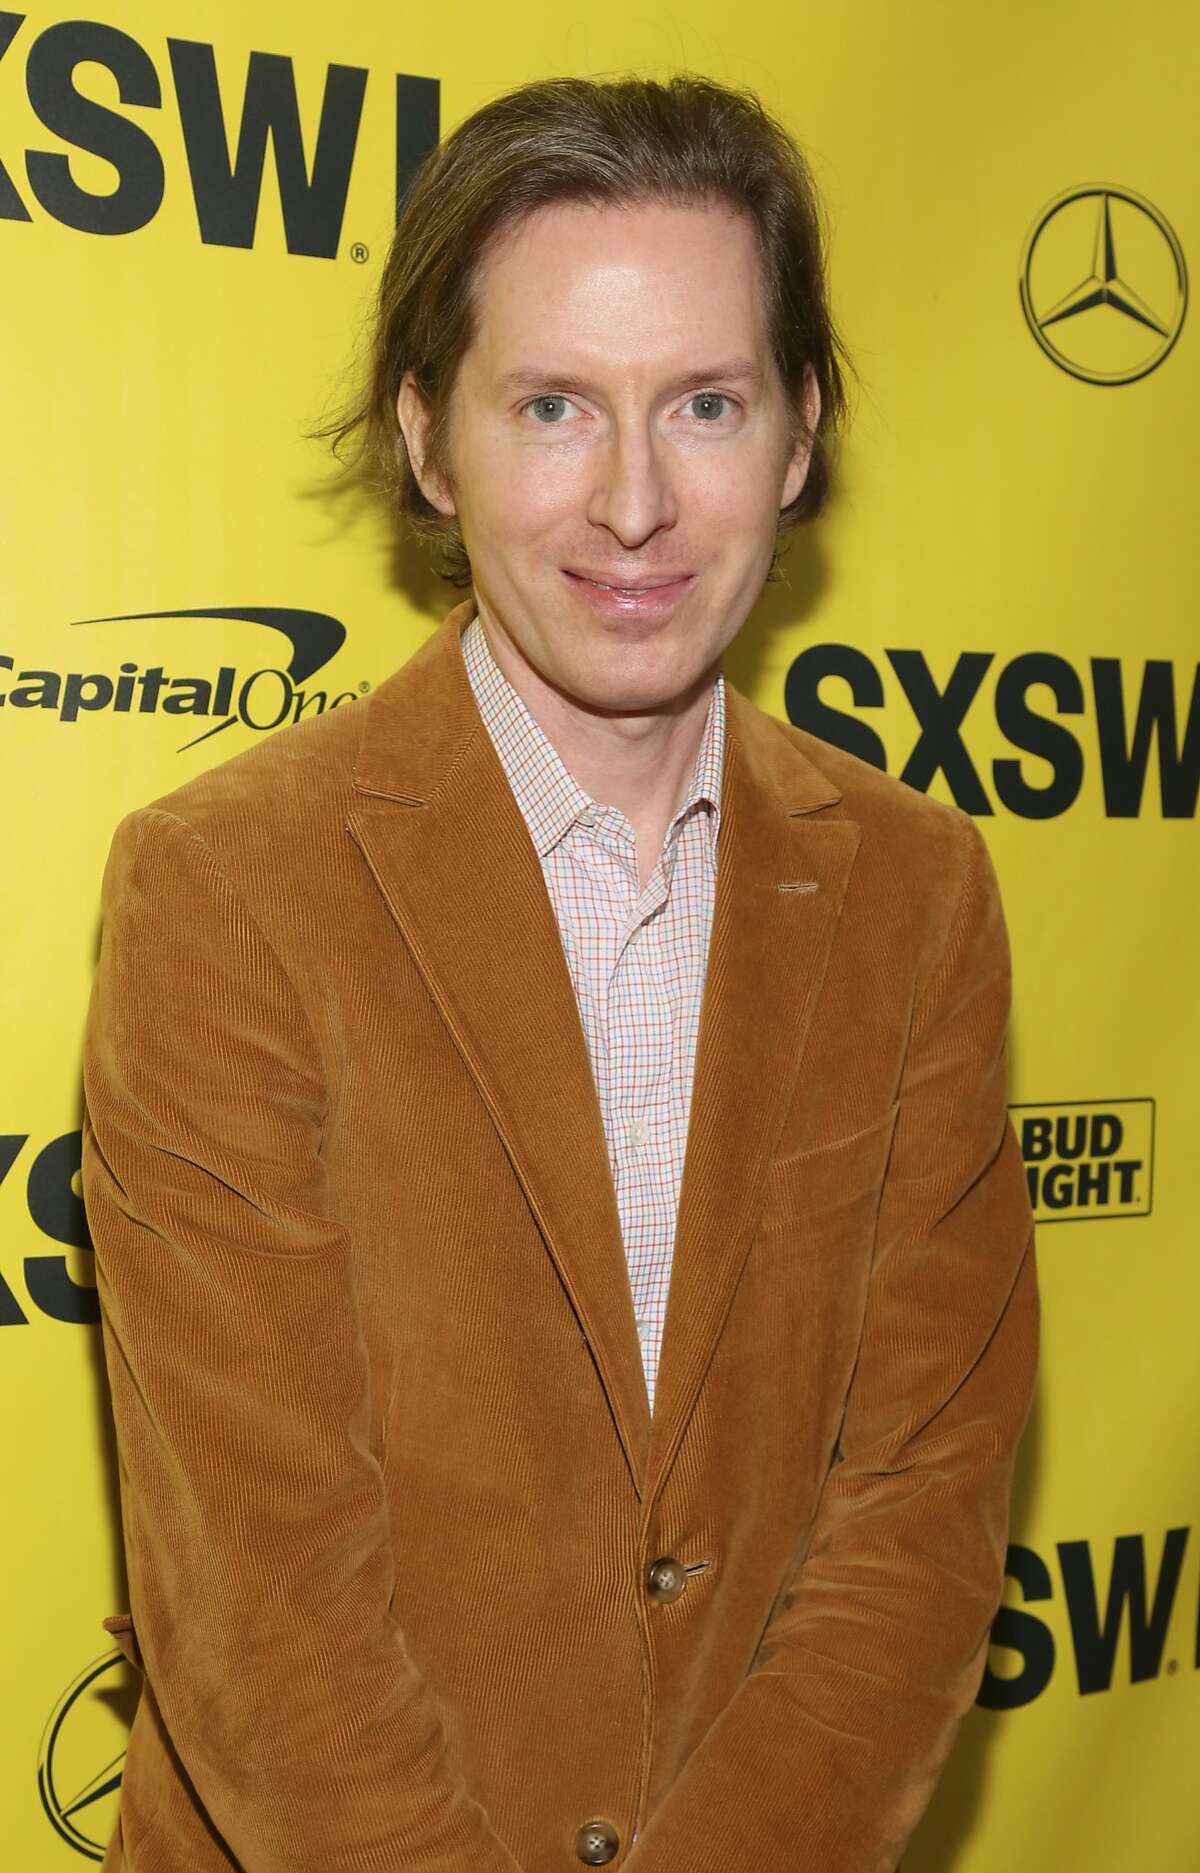 Director Wes Anderson's films are known for their visual and narrative style. Wesley Wales Anderson was born on May 1, 1969, in Houston, Texas. (Photo by Jack Plunkett/Invision/AP) >>>Click through to see films by Houston-born Wes Anderson.